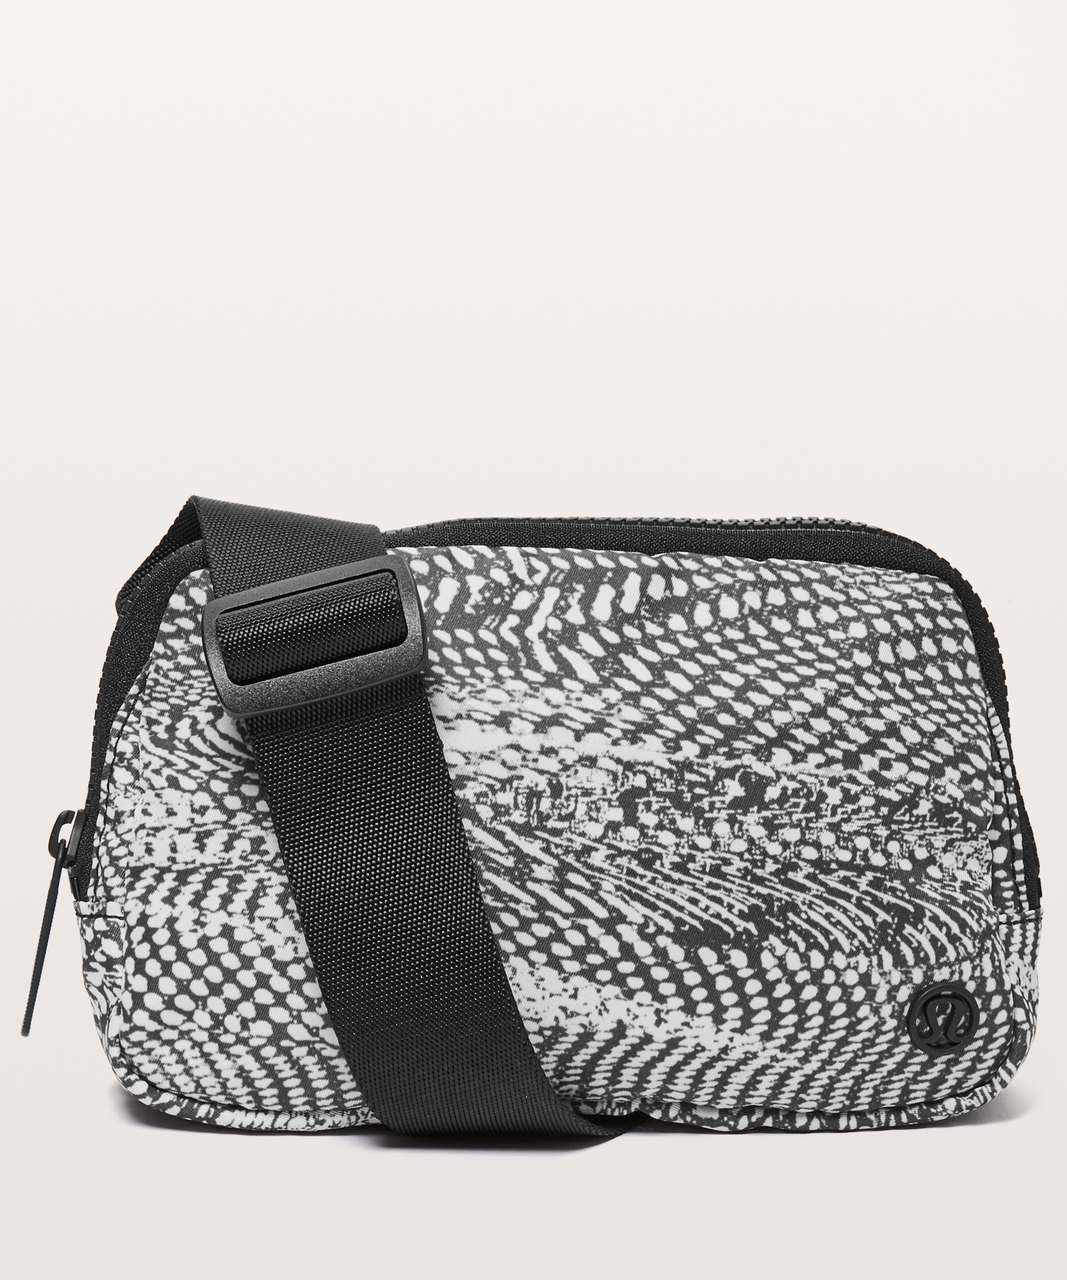 Lululemon Everywhere Belt Bag *1L - Swerve Vapor Metal Grey / Black